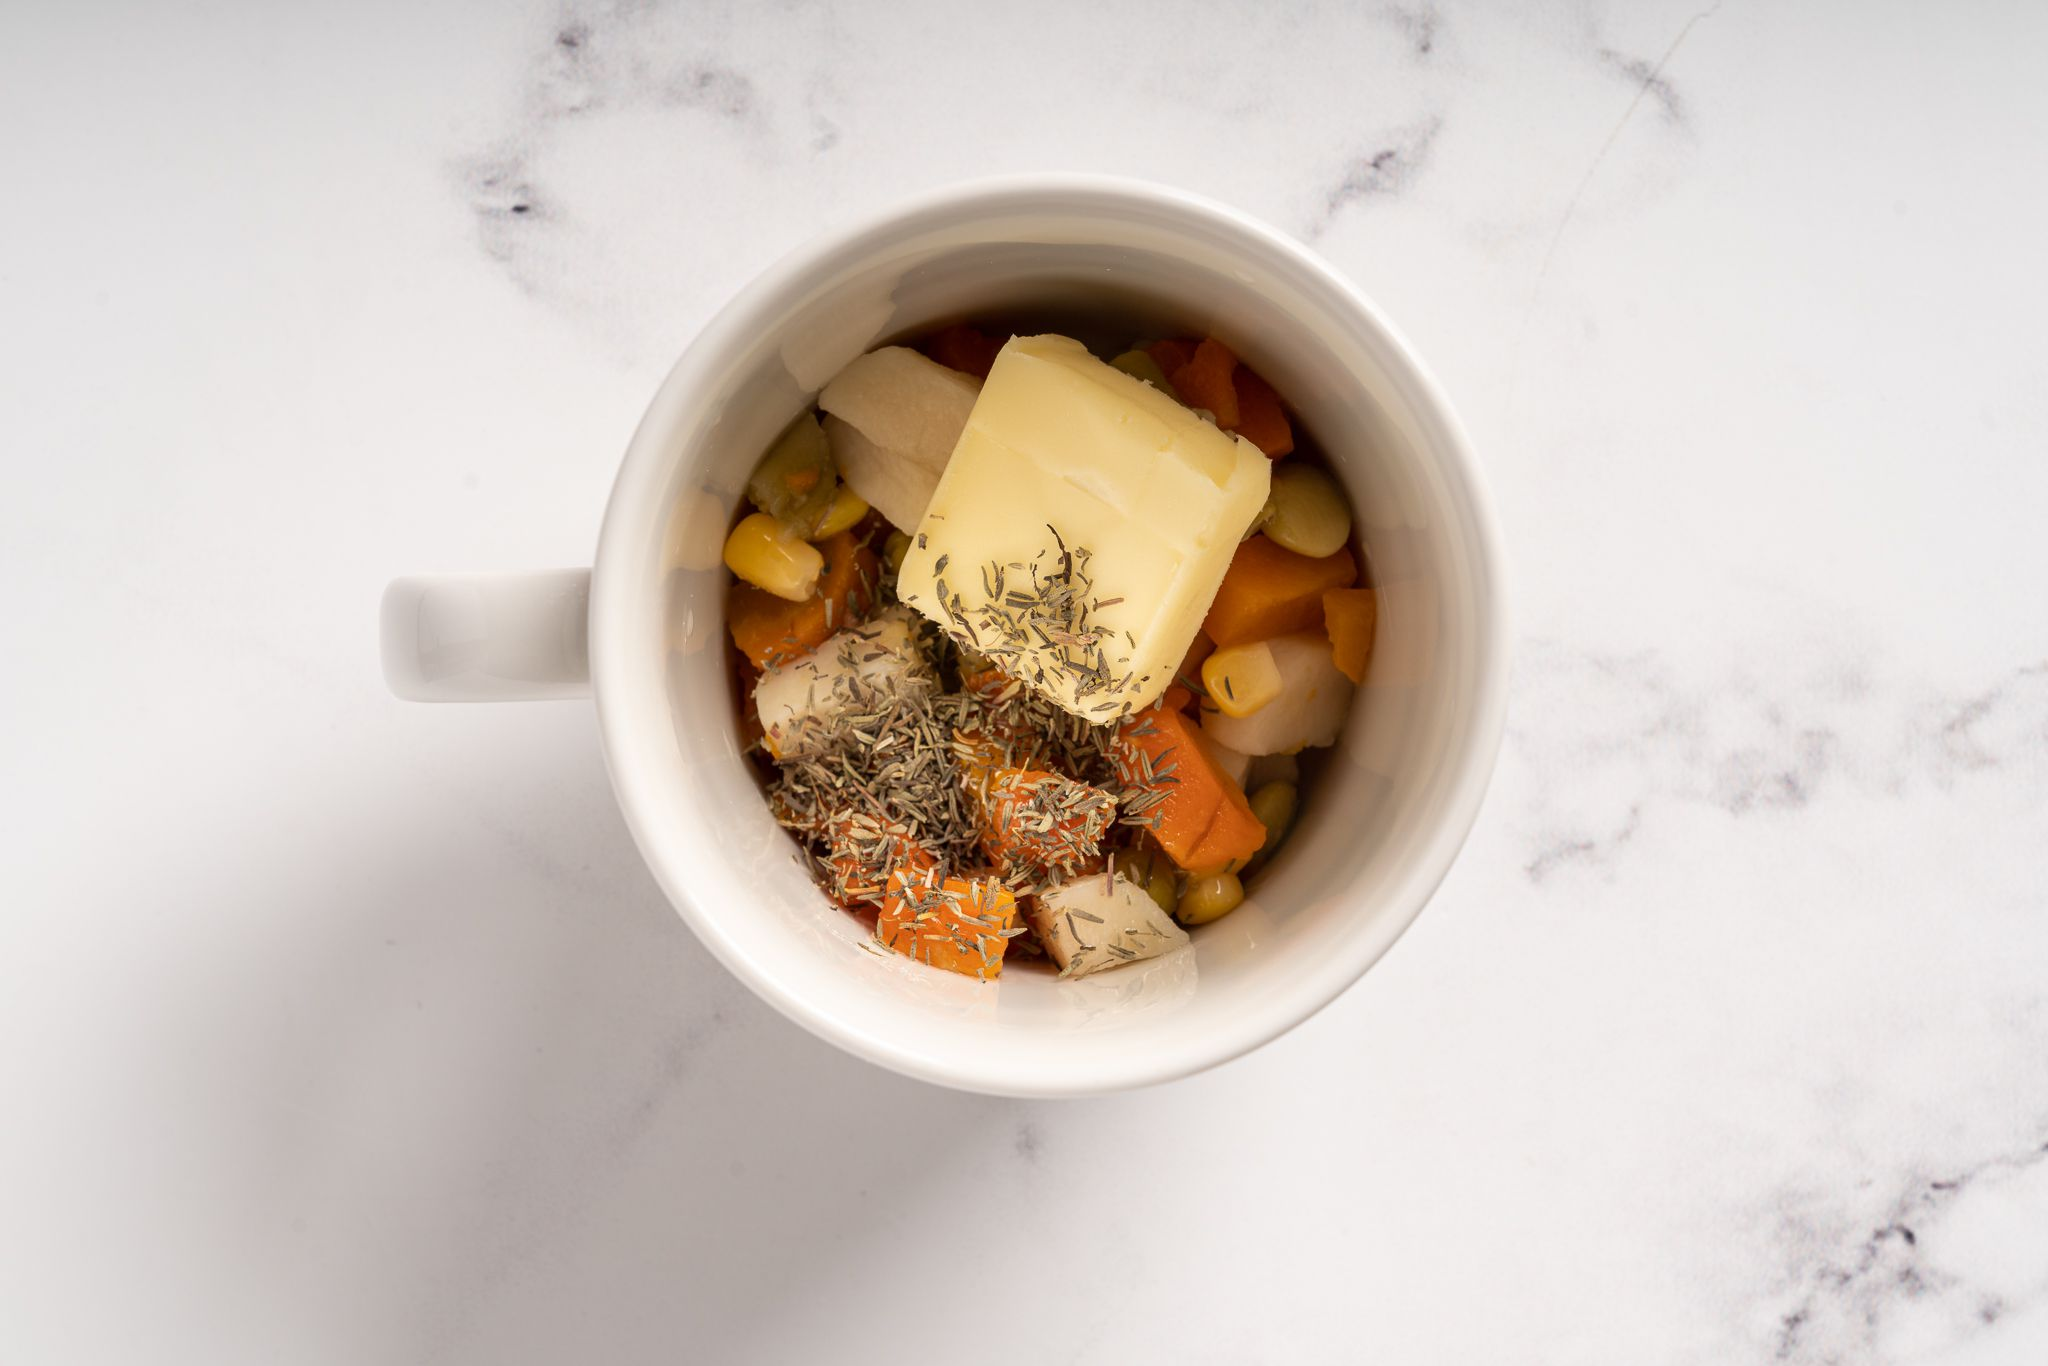 Vegetables, butter, and thyme in a mug